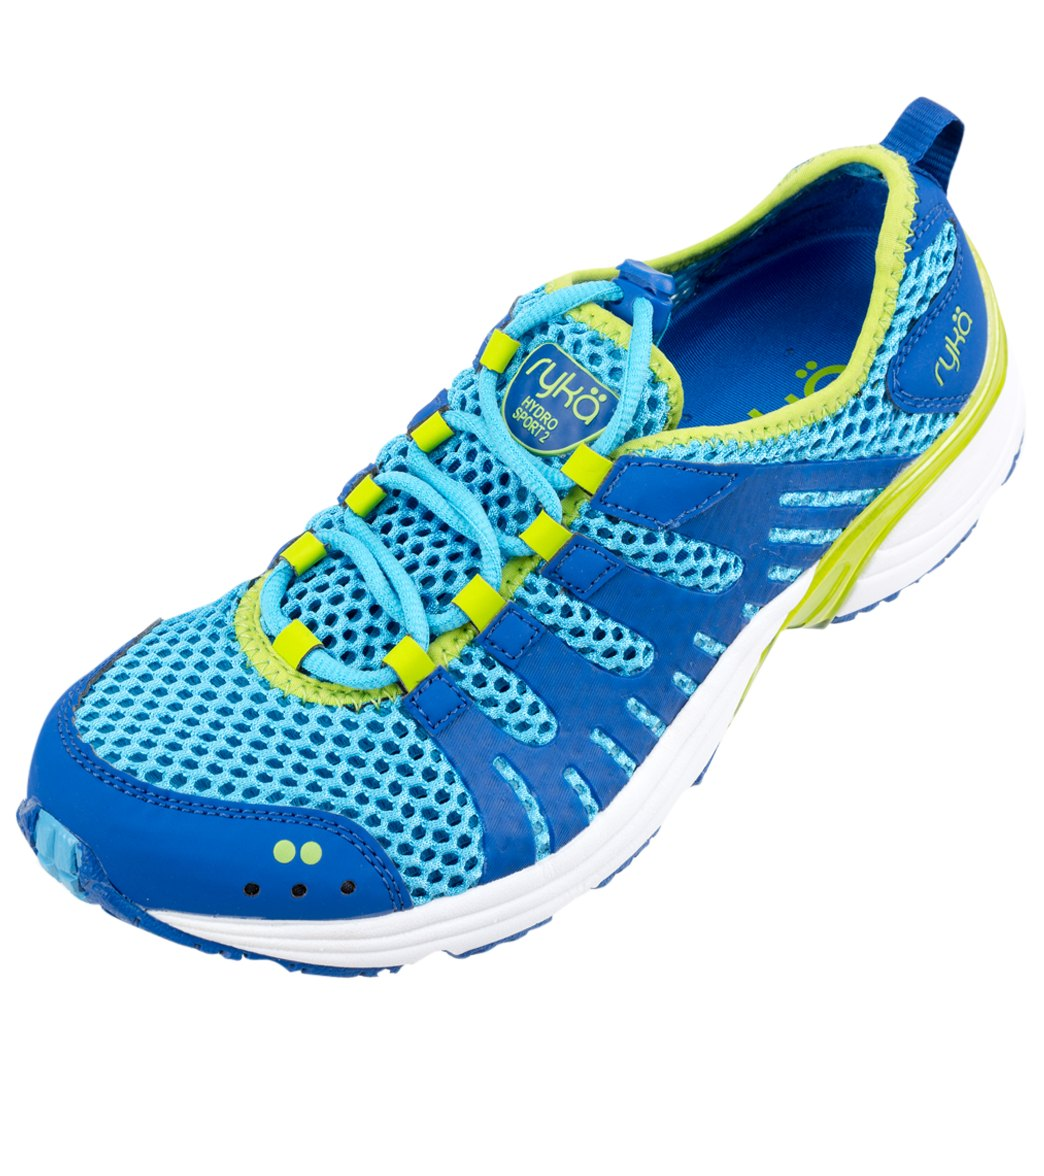 9f844fe28aef Ryka Women s Hydro Sport 2 Water Shoes at SwimOutlet.com - Free ...